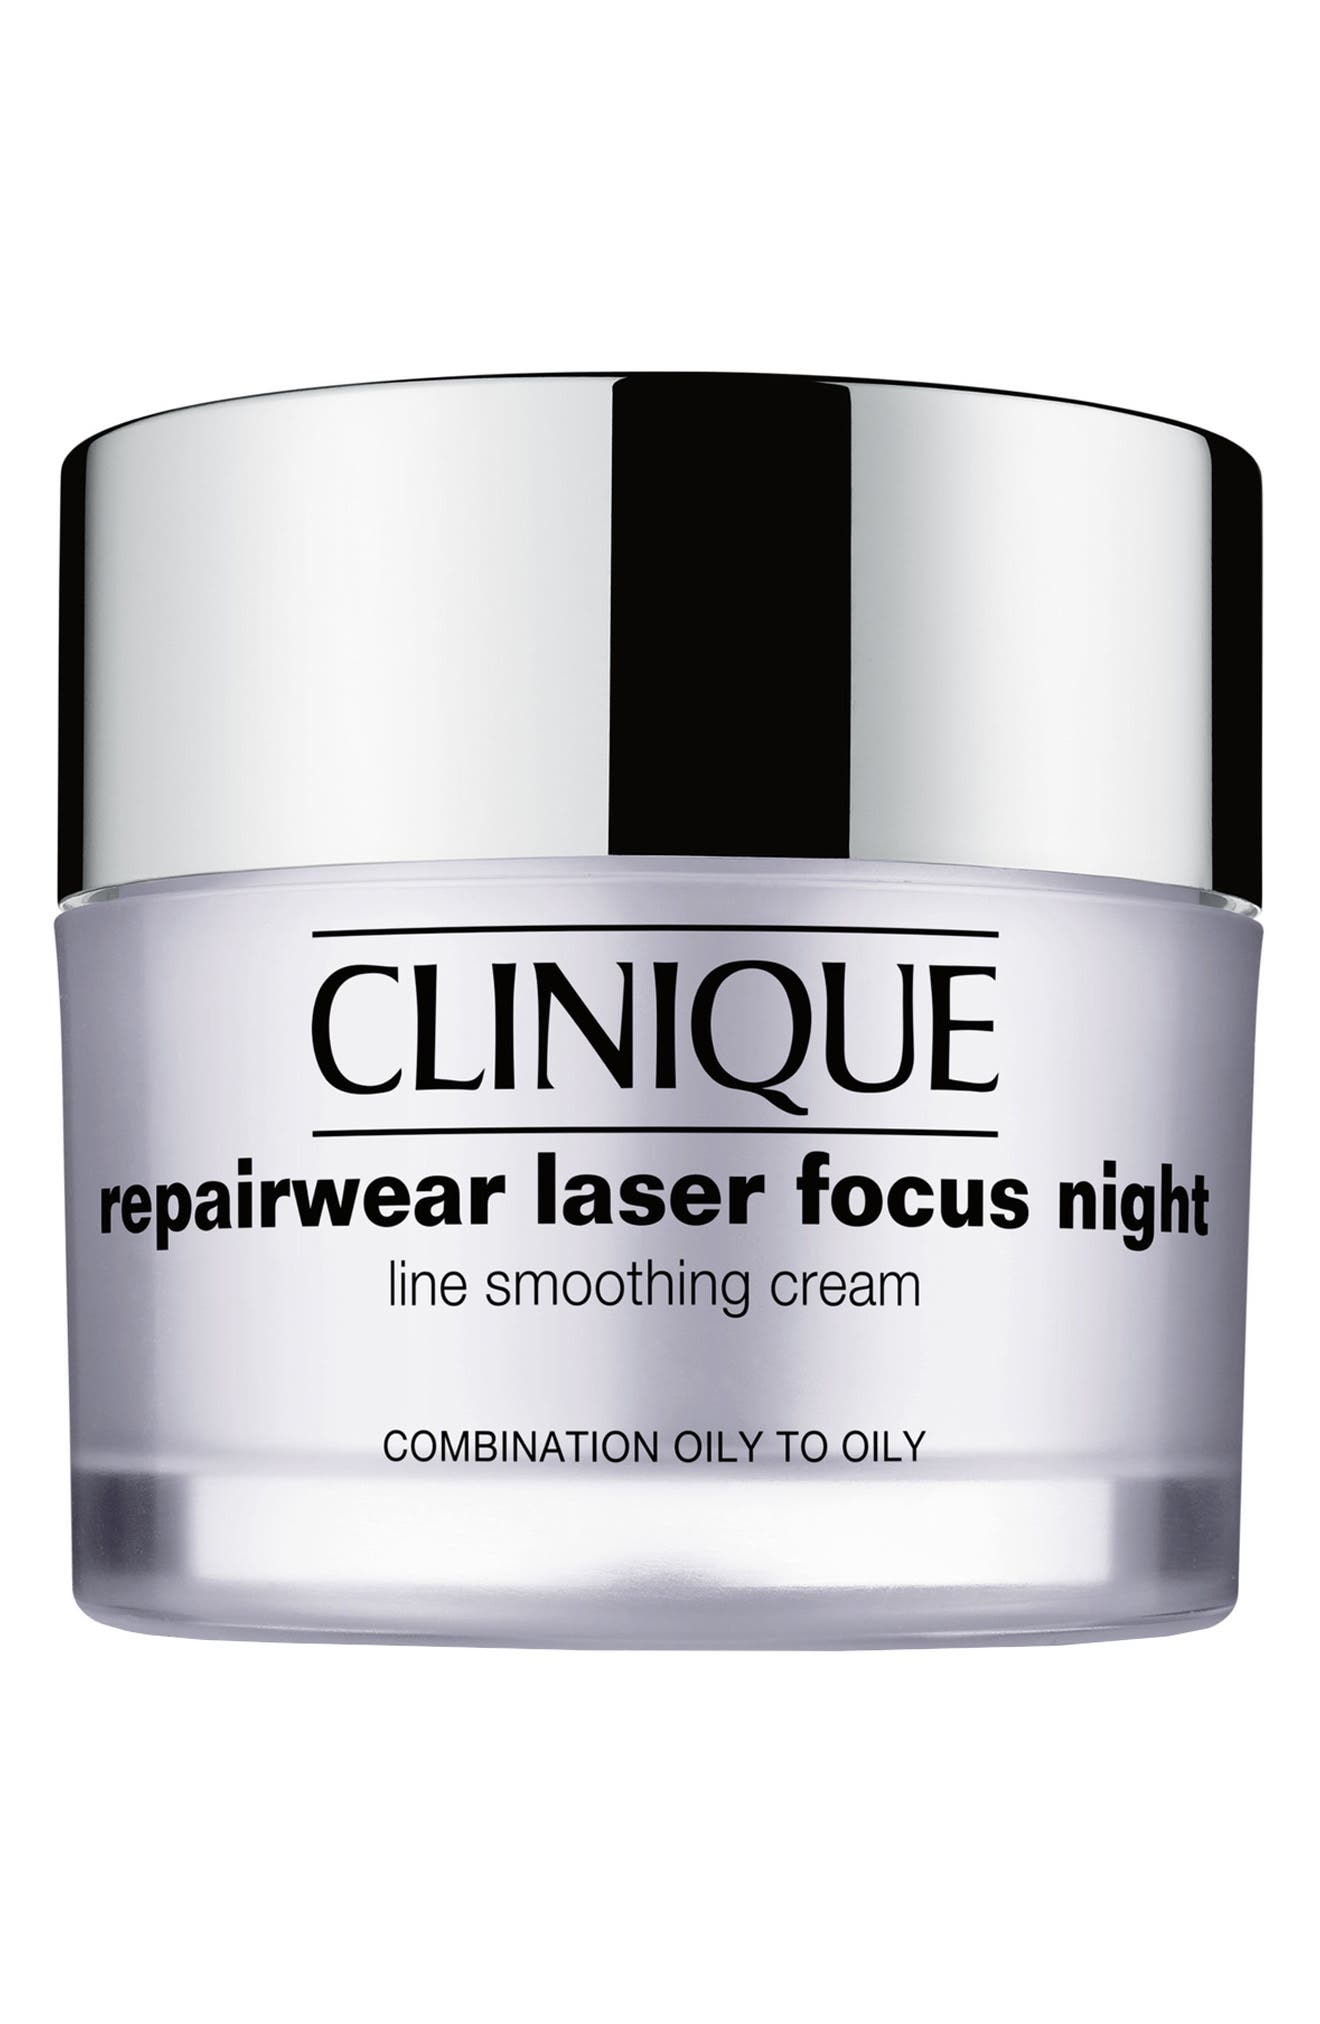 Repairwear Laser Focus Night Line Smoothing Cream for Combination Oily to Oily Skin,                             Alternate thumbnail 2, color,                             COMBINATION OILY TO OILY